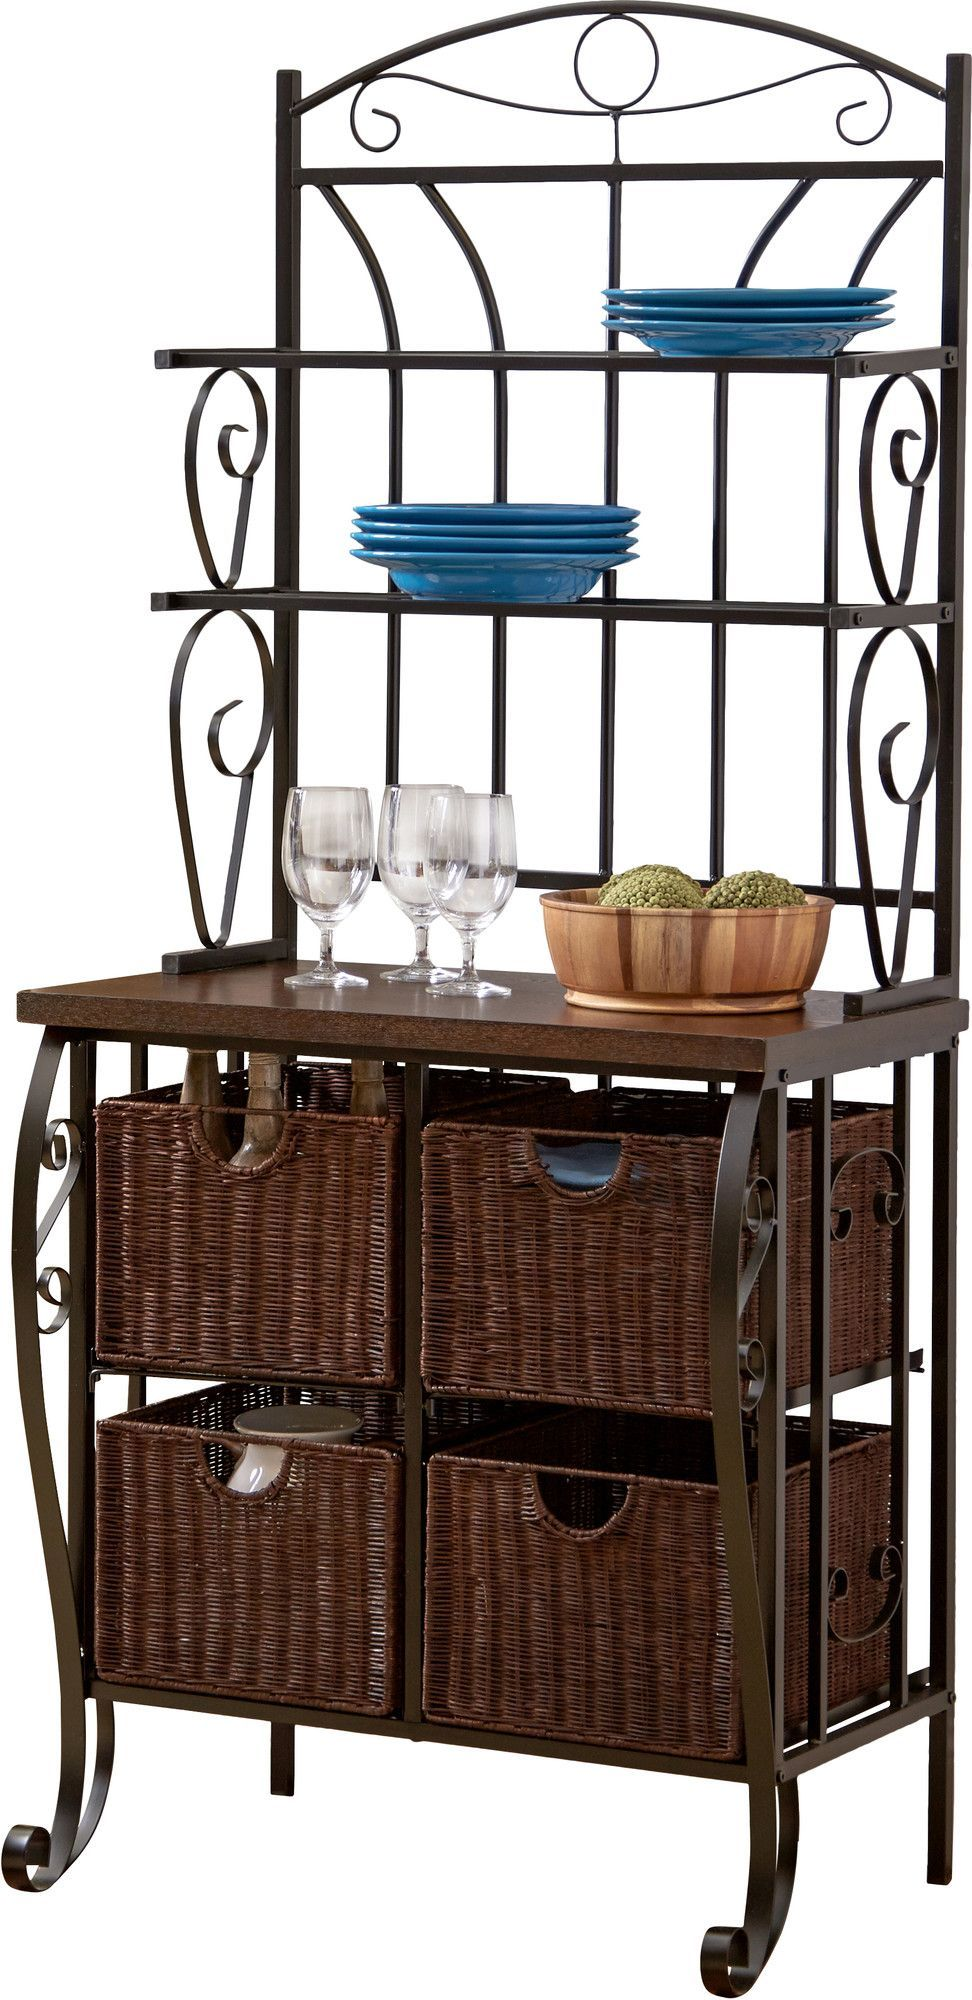 Features Used In Kitchen Storage Basket Included Counter